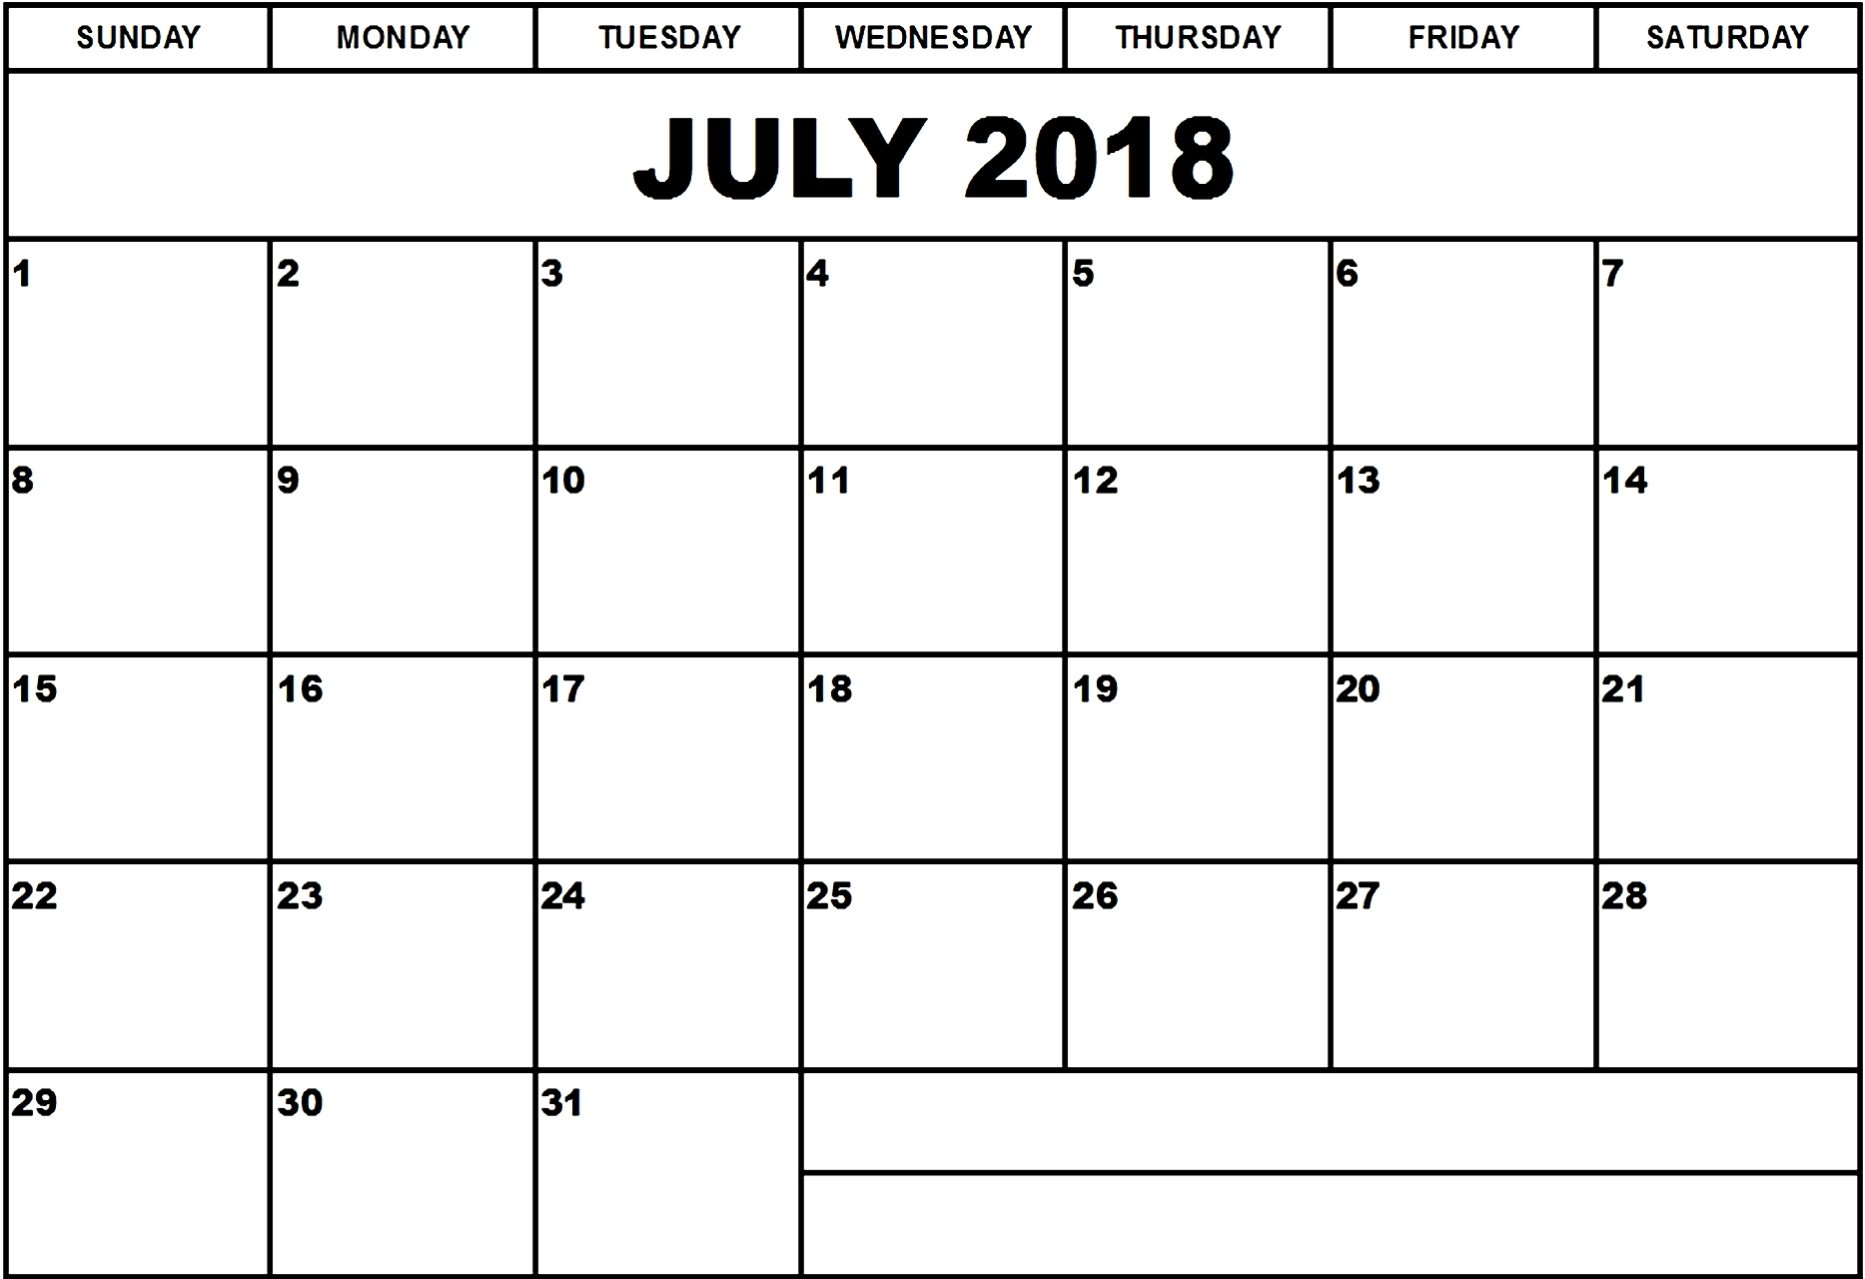 July Month 2018 Calendar Template - Free Printable Calendar, Blank pertaining to Monthly Calendar Template Clip Art